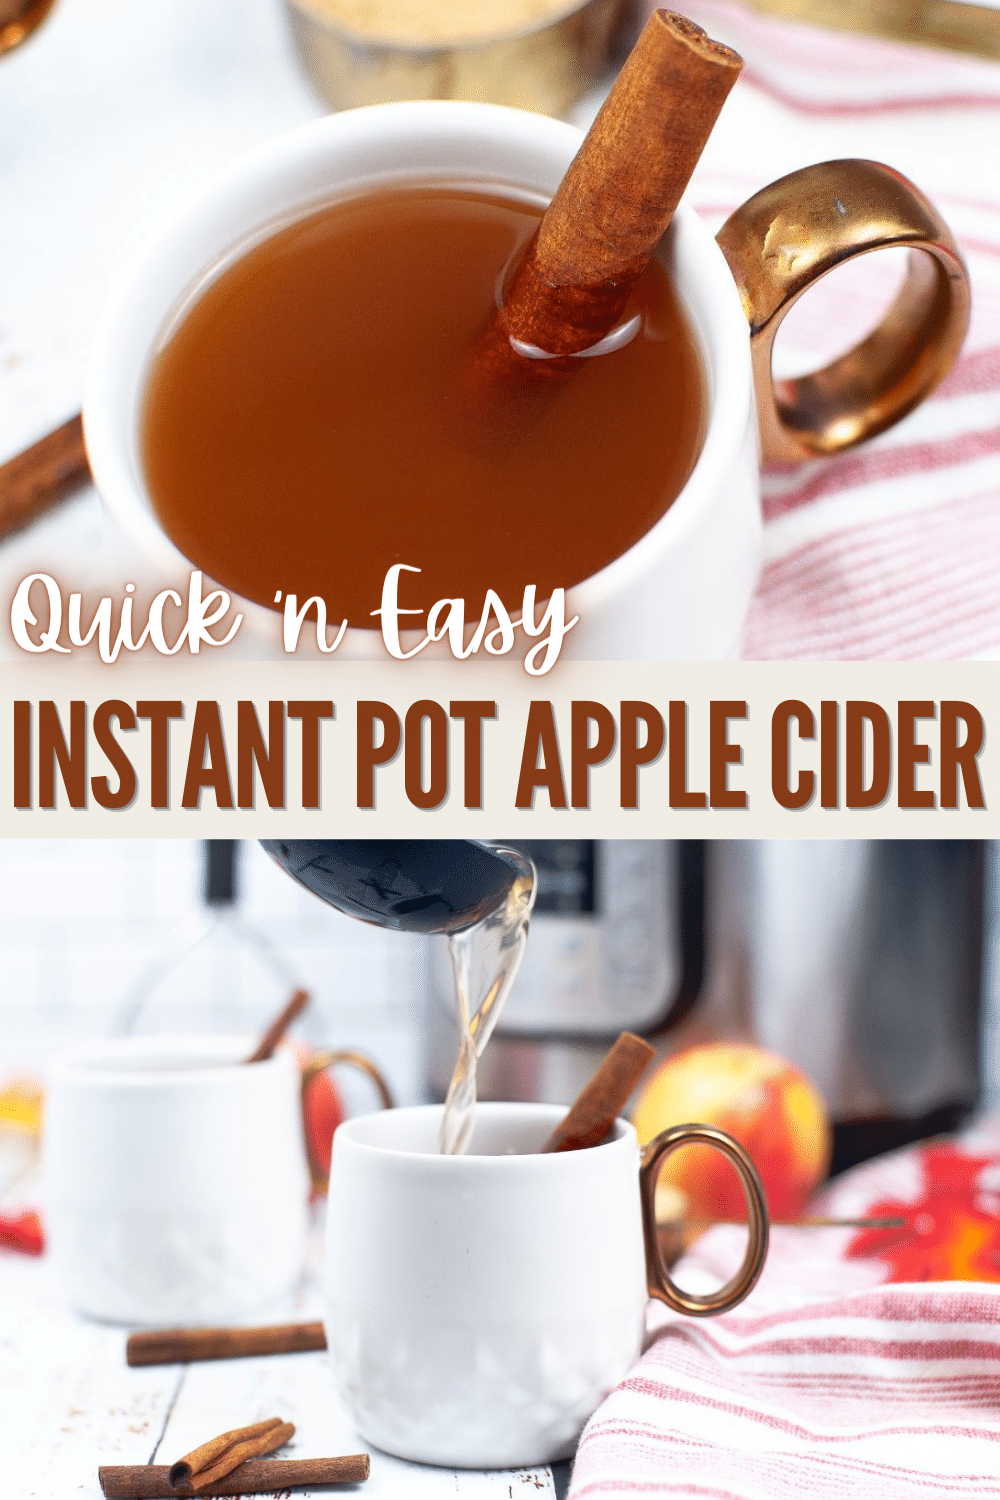 This Instant Pot Apple Cider recipe is the best drink for fall, full of comforting flavors and is perfect to warm you up on a cool day. #instantpot #pressurecooker #fall #applecider #recipe via @wondermomwannab